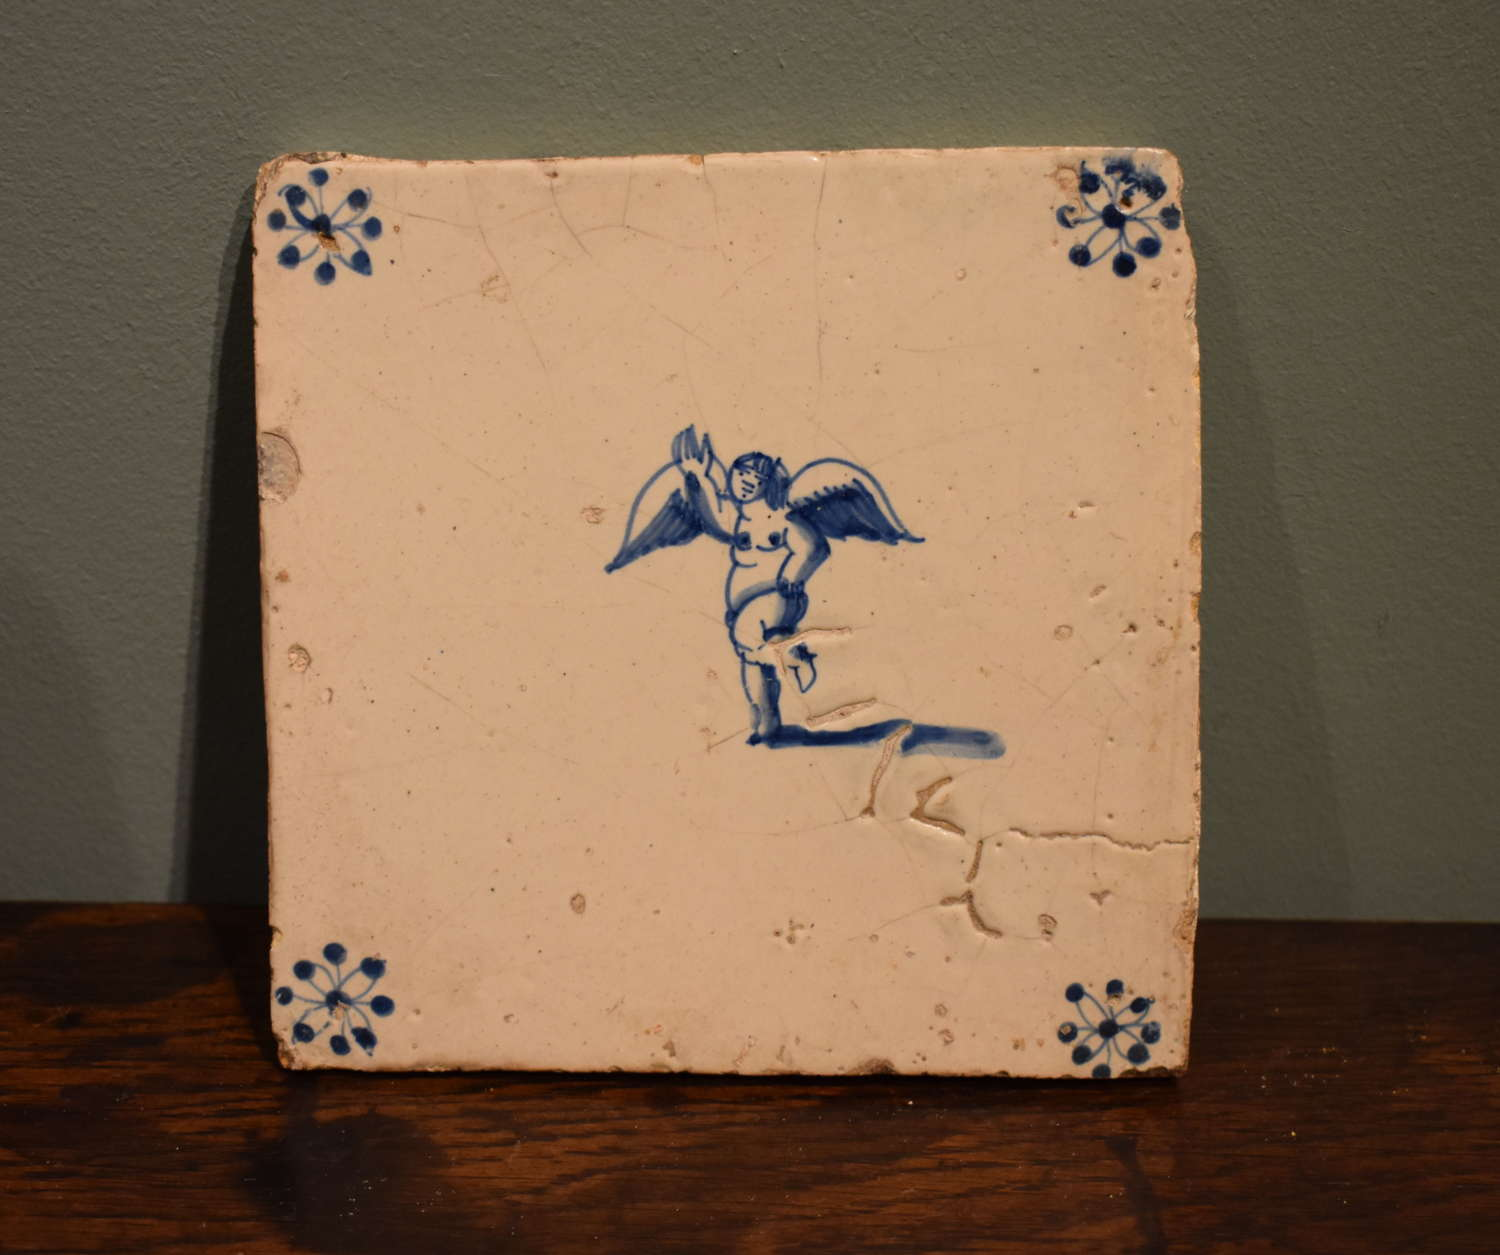 17th c. Dutch Delft blue and white tile - Angel